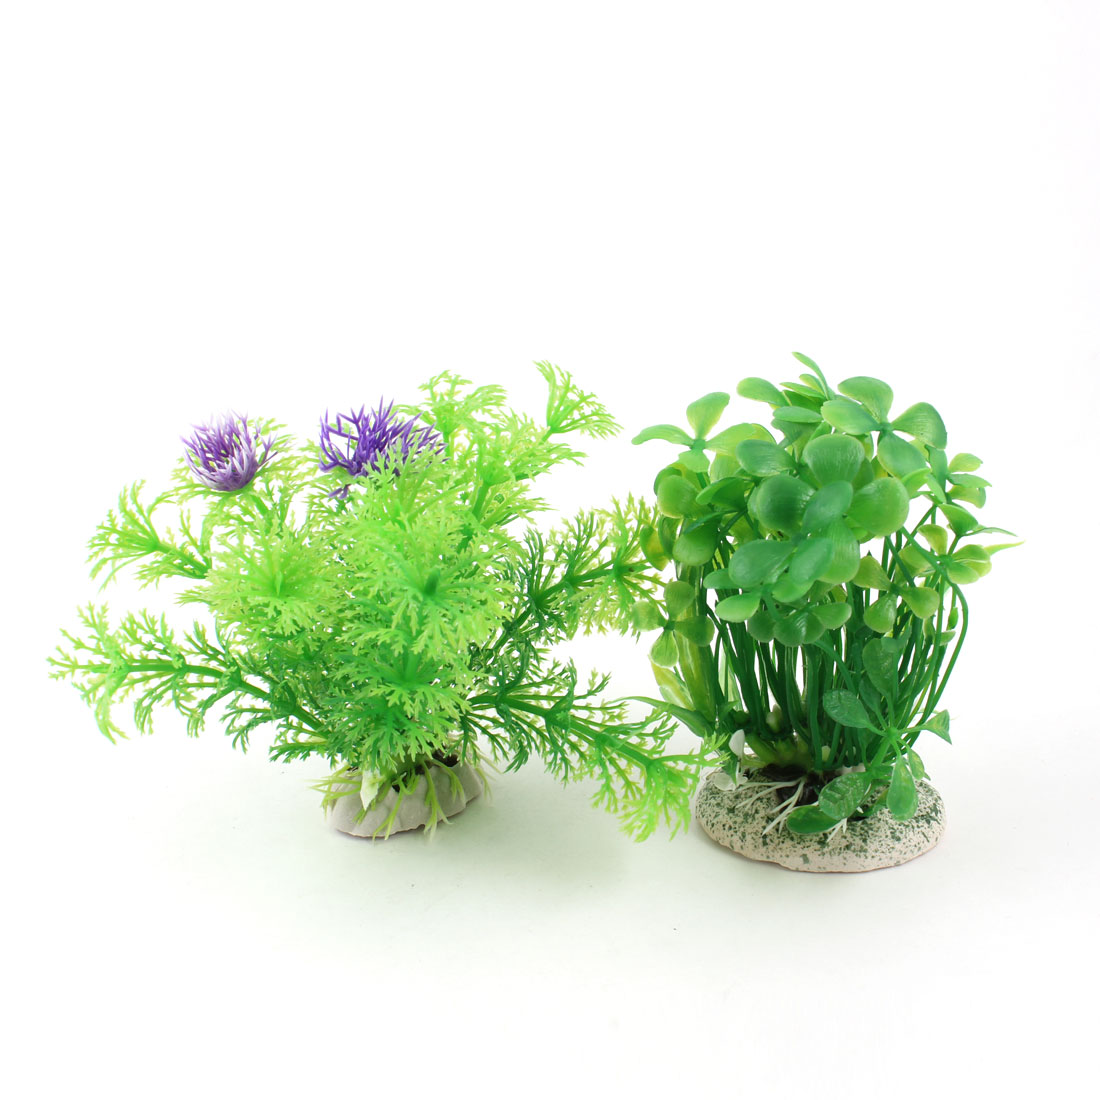 "2 Pcs 4.3"" High Green Artificial Fish Tank Aquarium Plants w Ceramic Base"